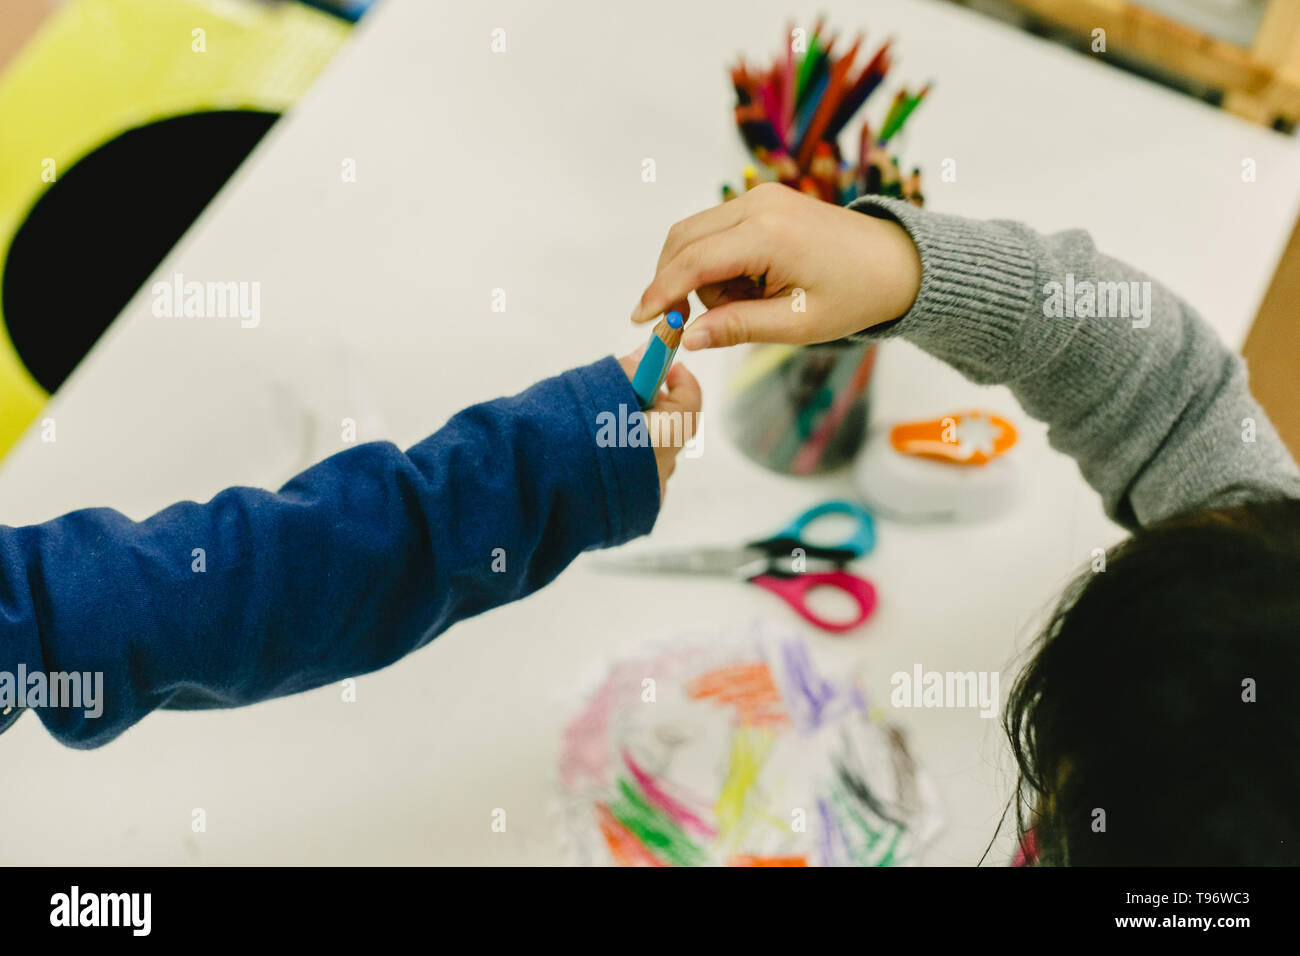 Two students share pencils in a nursery school, concept of collaboration - Stock Image